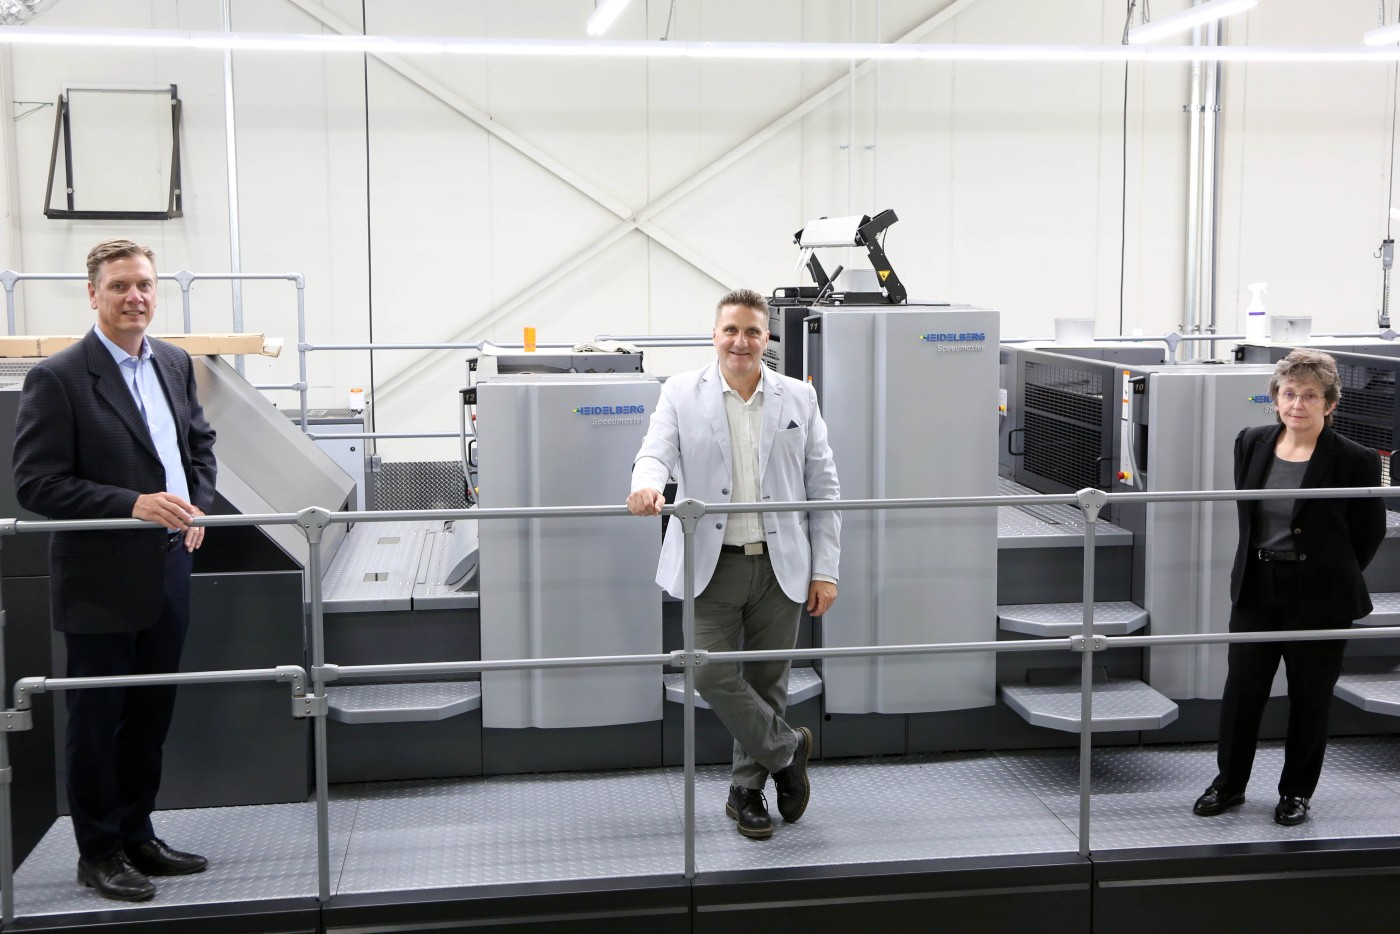 Packaging Printers in North America Invest in Highly Efficient Solutions From Heidelberg